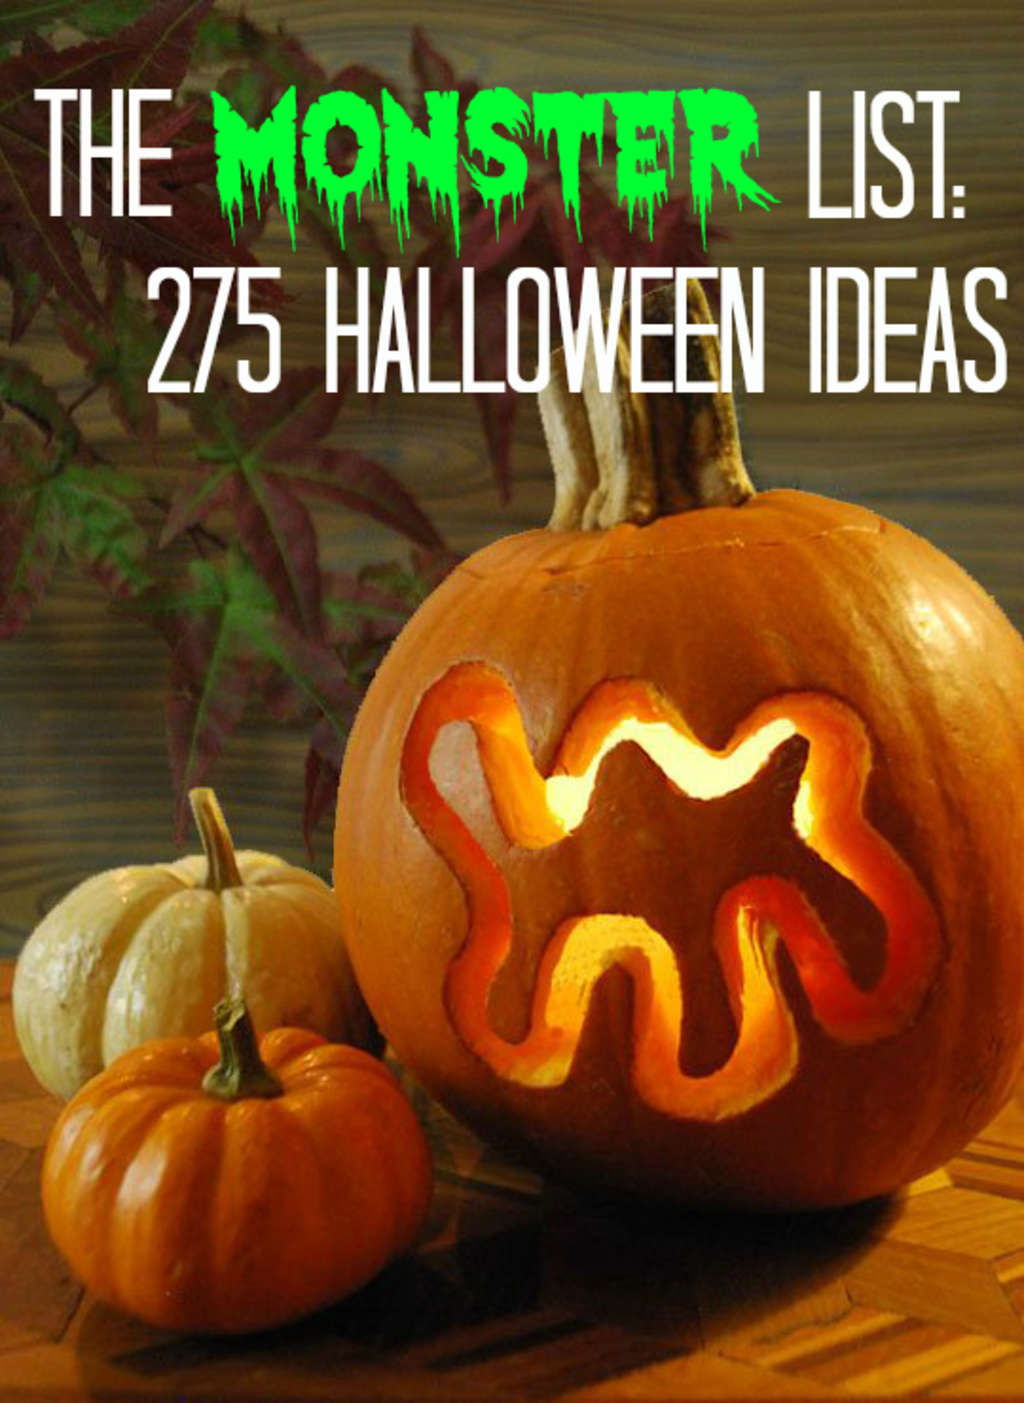 The MONSTER List: 275 Halloween Ideas